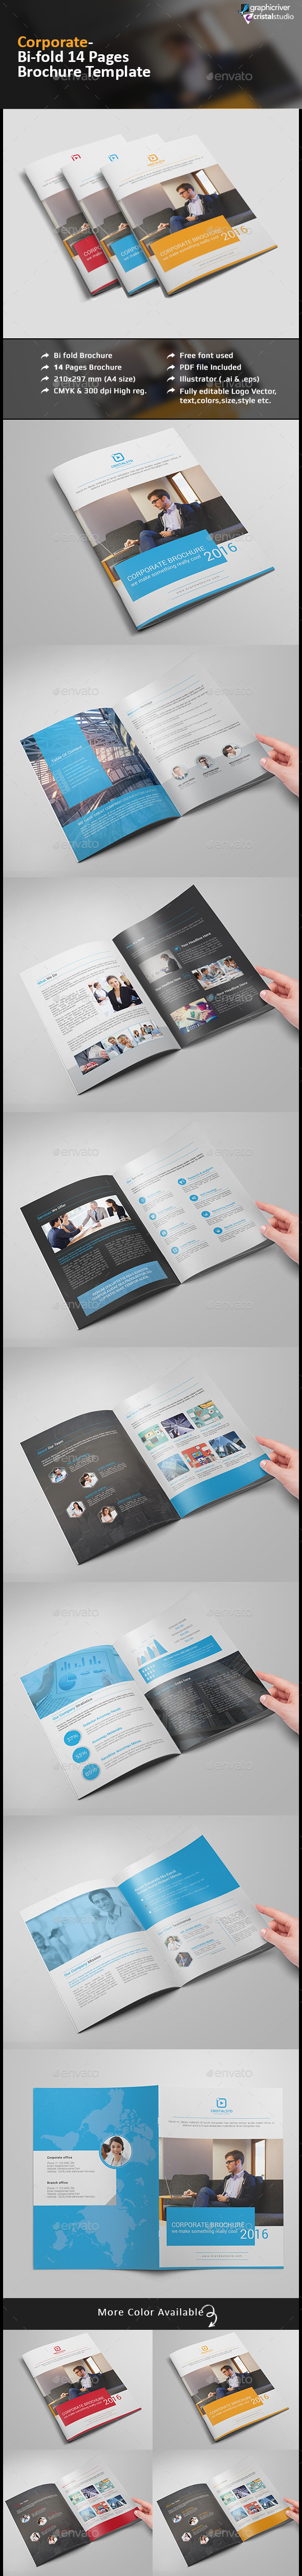 Corporate Brochure-14 Pages - Corporate Brochures